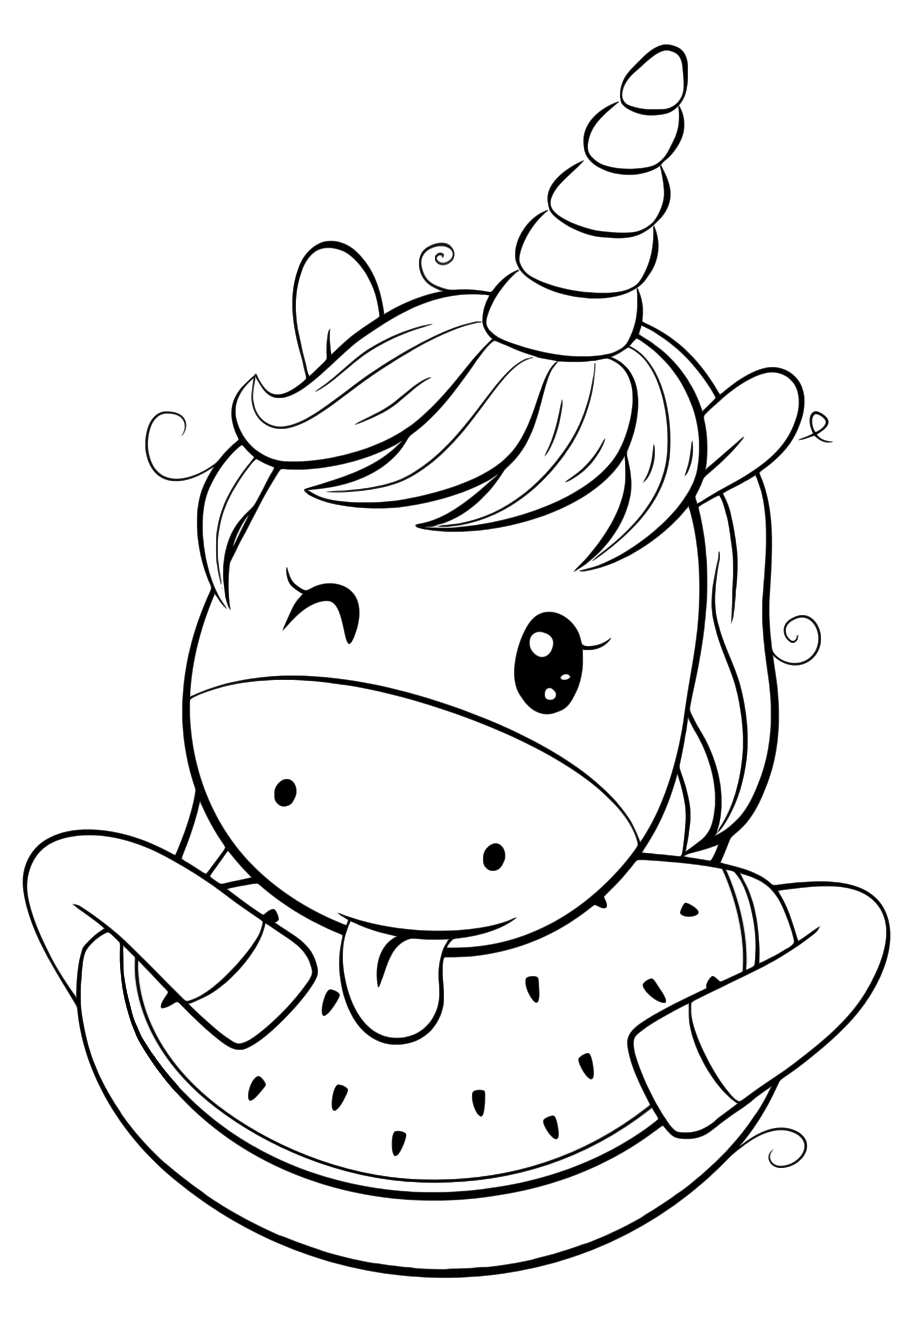 coloring cute pictures free printable chibi coloring pages for kids coloring pictures cute